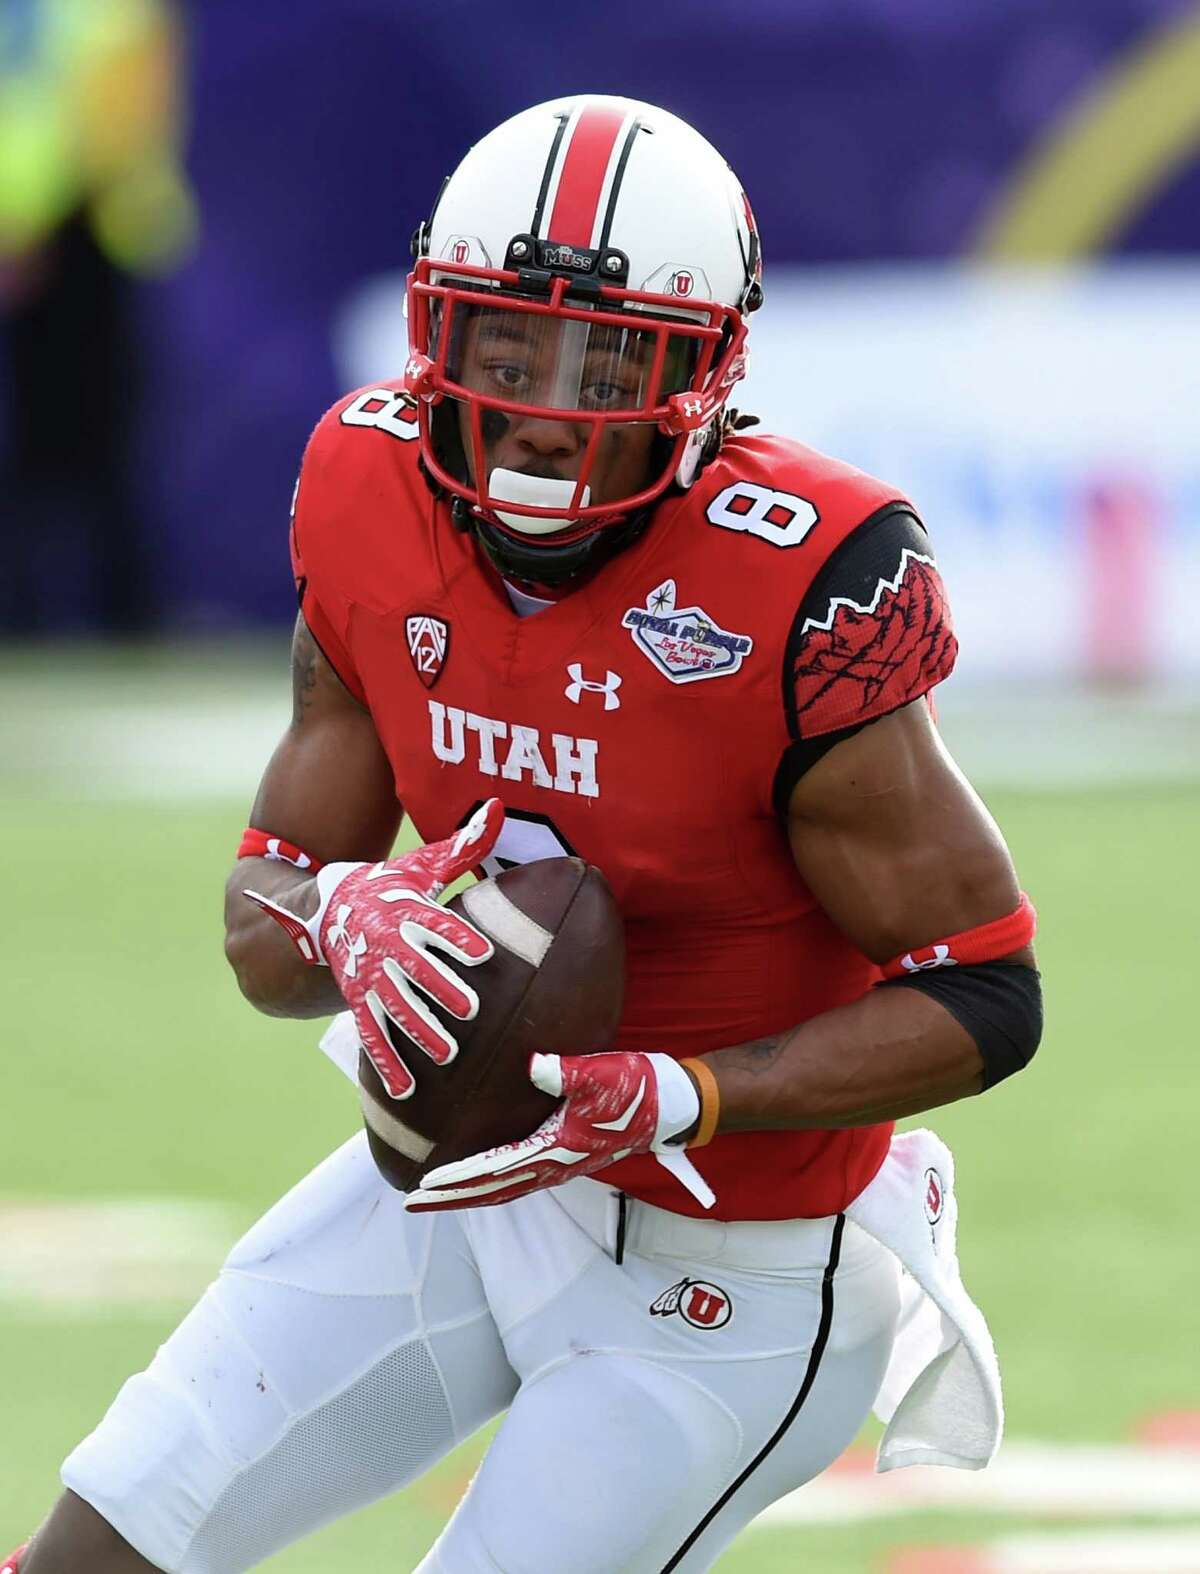 LAS VEGAS, NV - DECEMBER 20: Wide receiver Kaelin Clay #8 of the Utah Utes runs for yardage after catching a pass against the Colorado State Rams during the Royal Purple Las Vegas Bowl at Sam Boyd Stadium on December 20, 2014 in Las Vegas, Nevada. Utah won 45-10. (Photo by Ethan Miller/Getty Images)